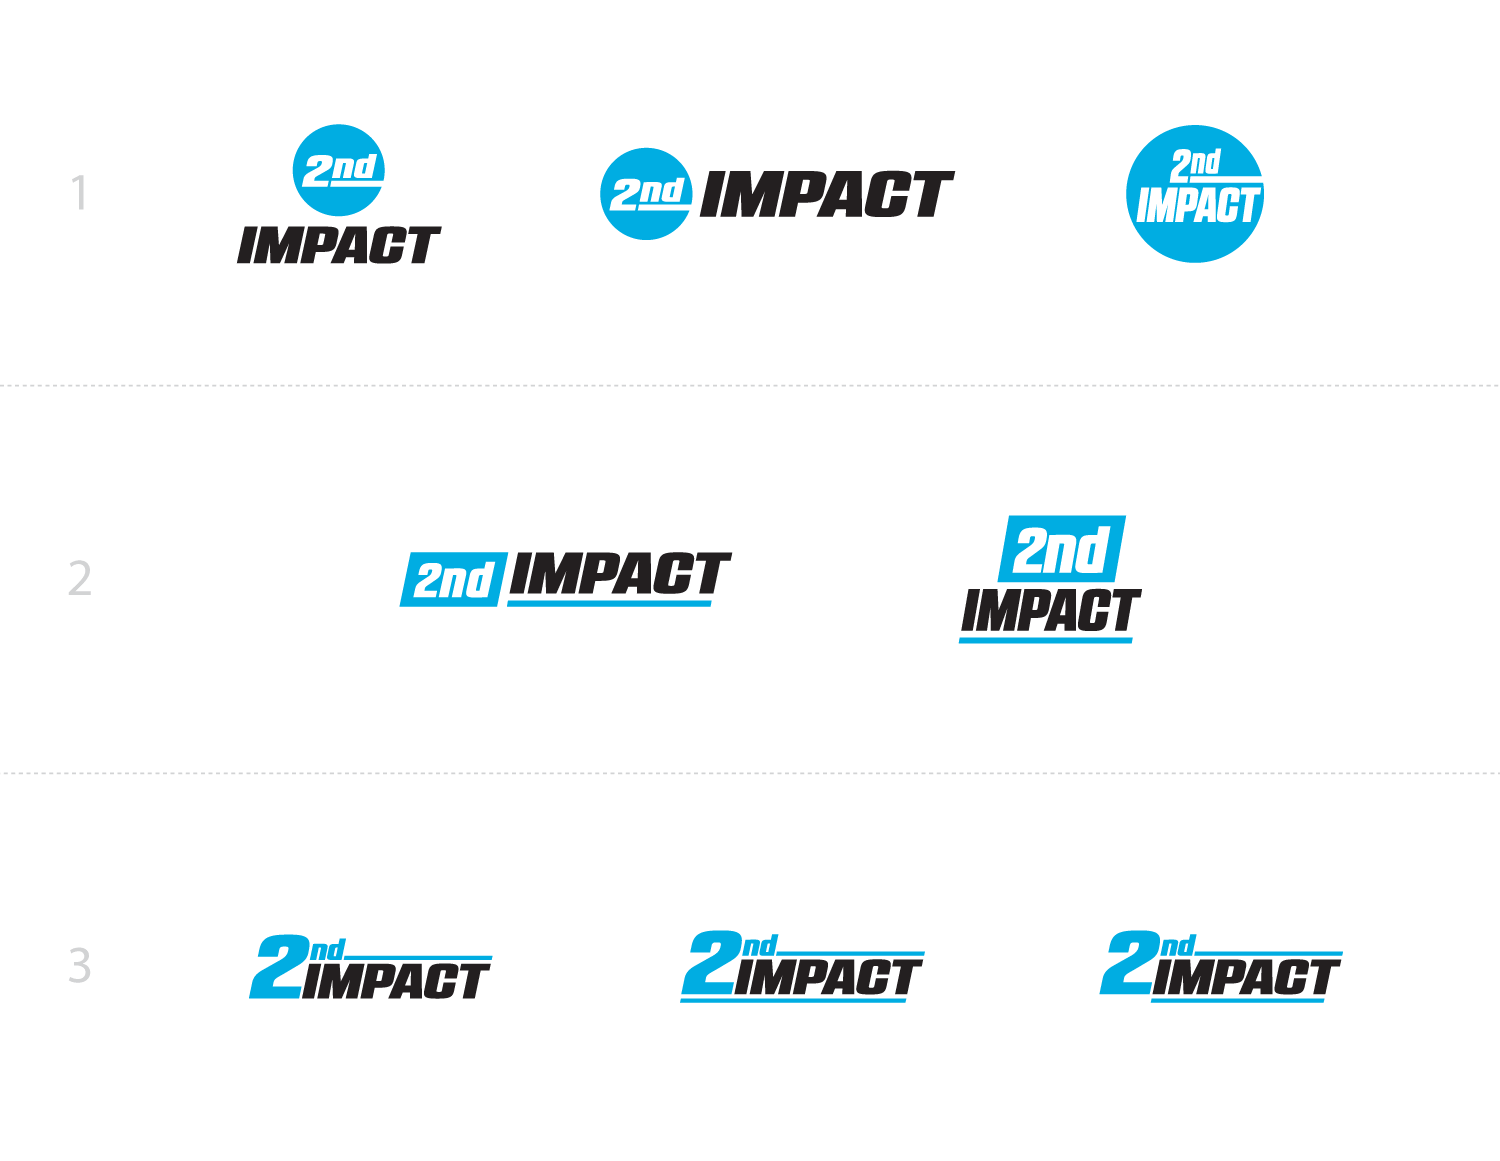 2nd Impact logo design round 2